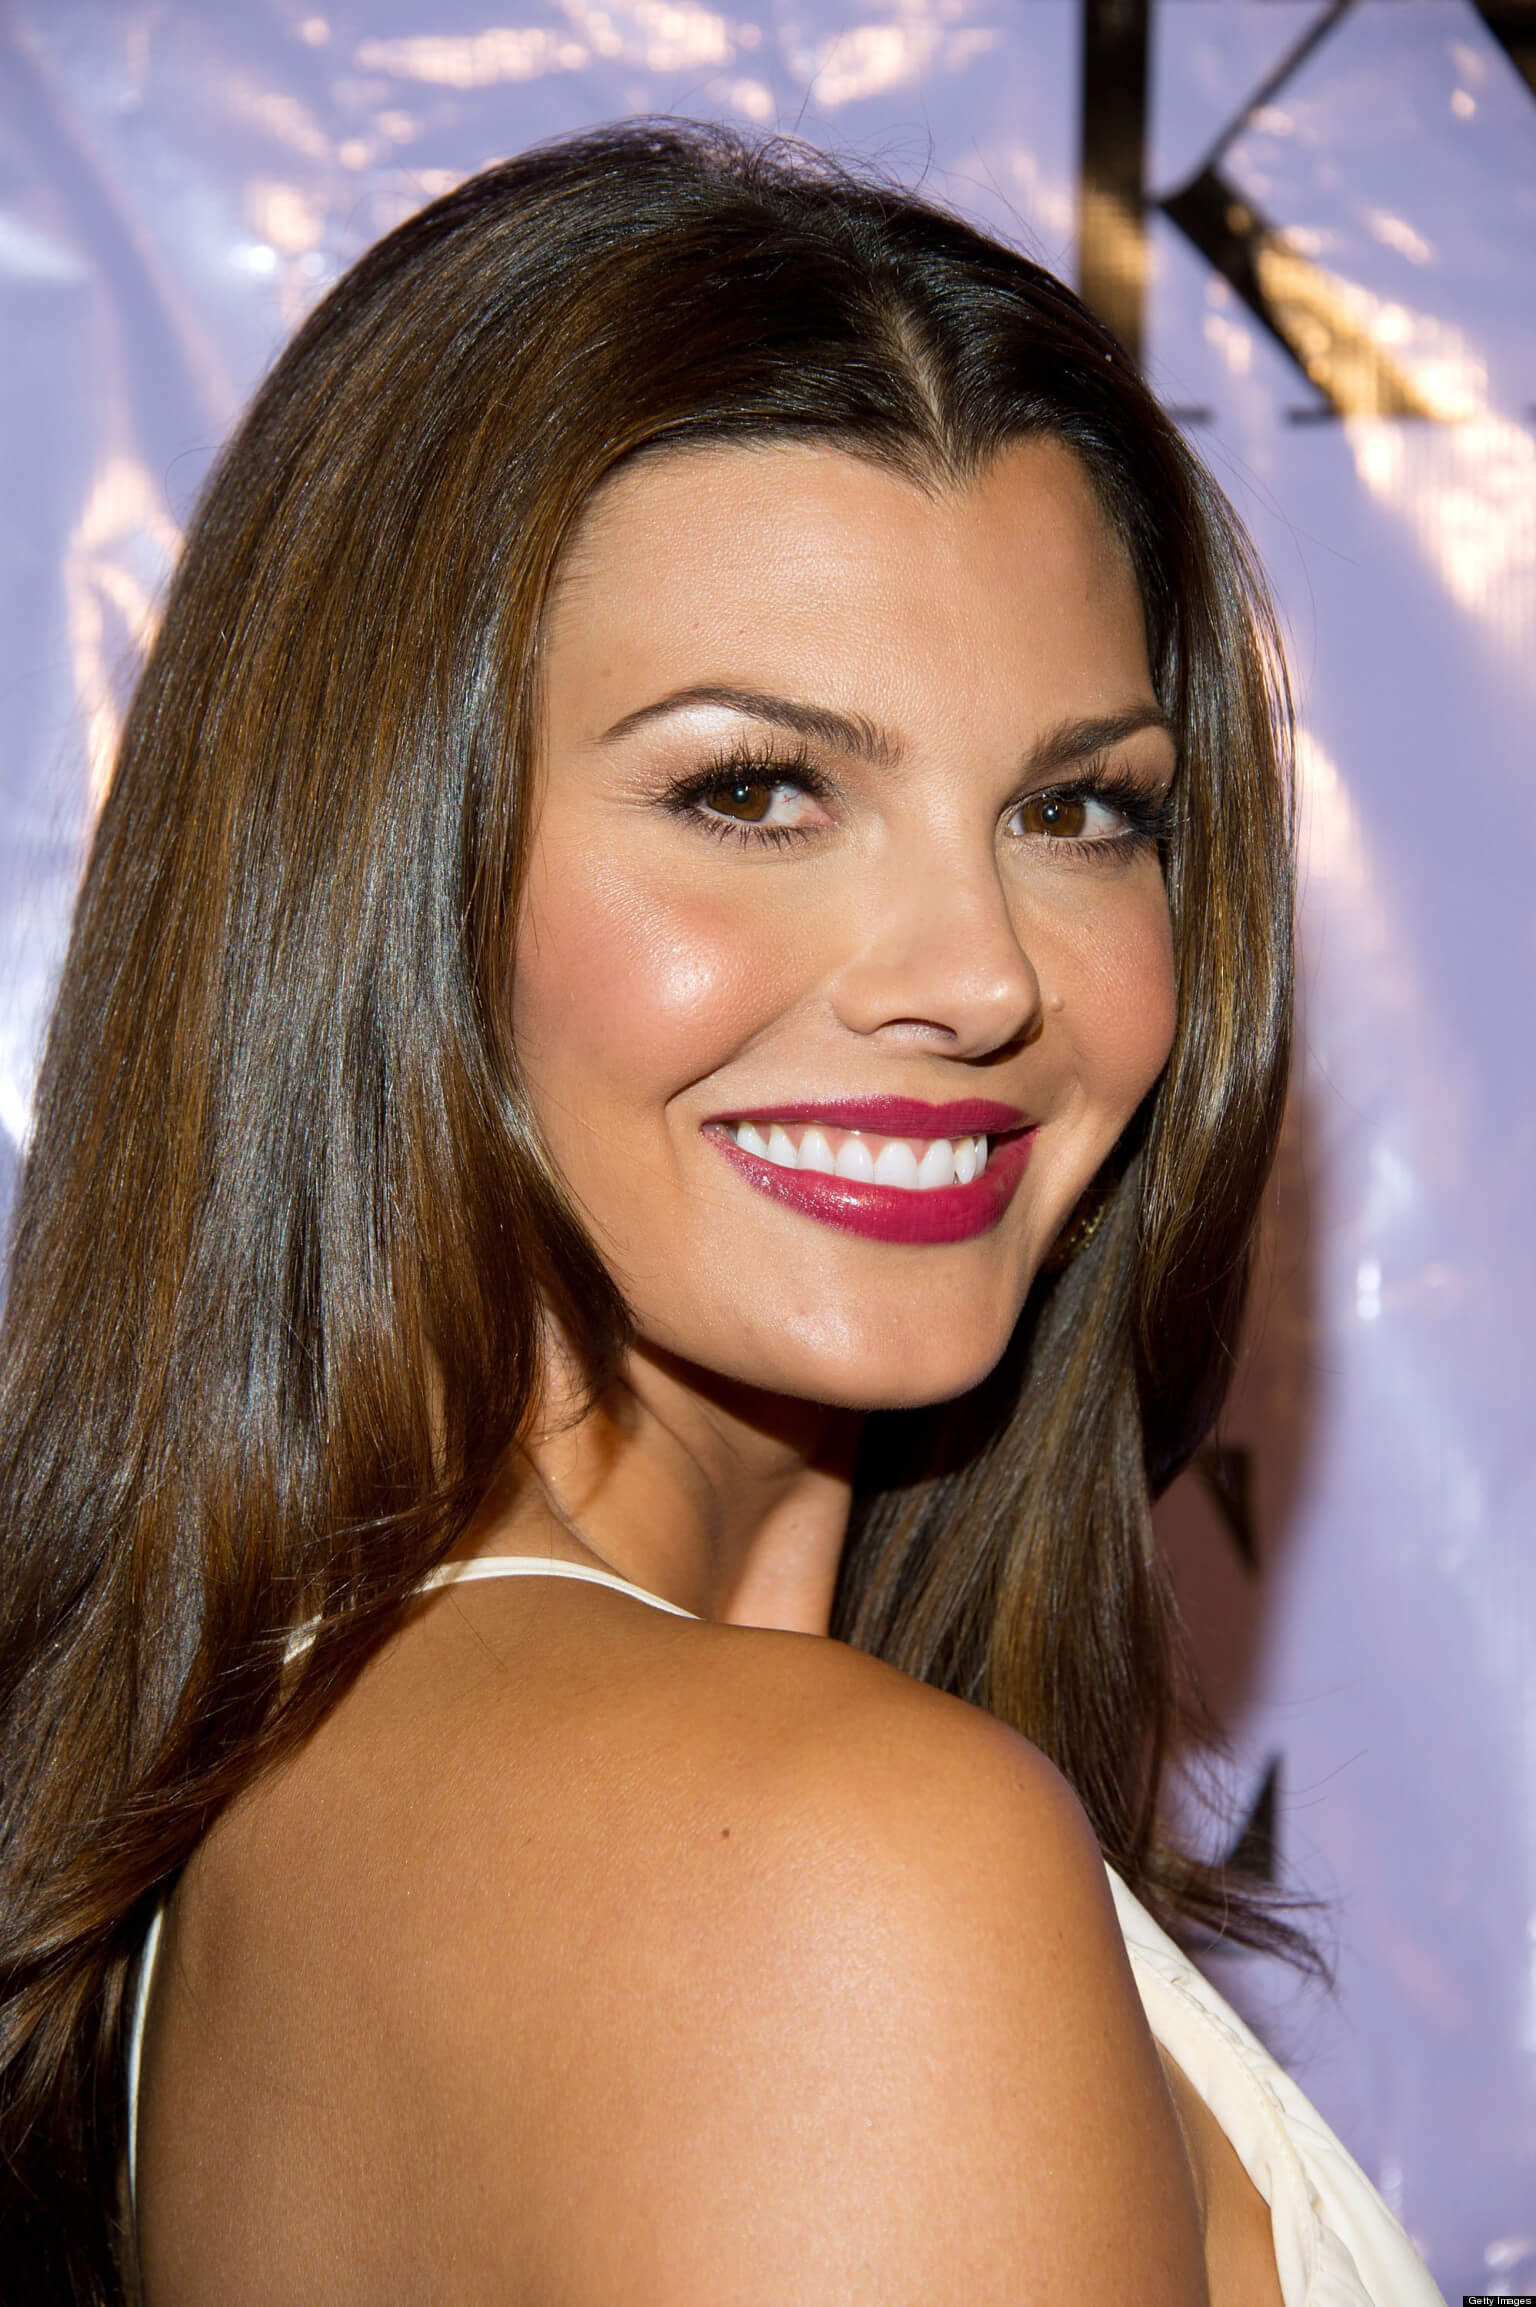 Ali Landry Biography, Age, Family, husband, Net Worth & Pictures